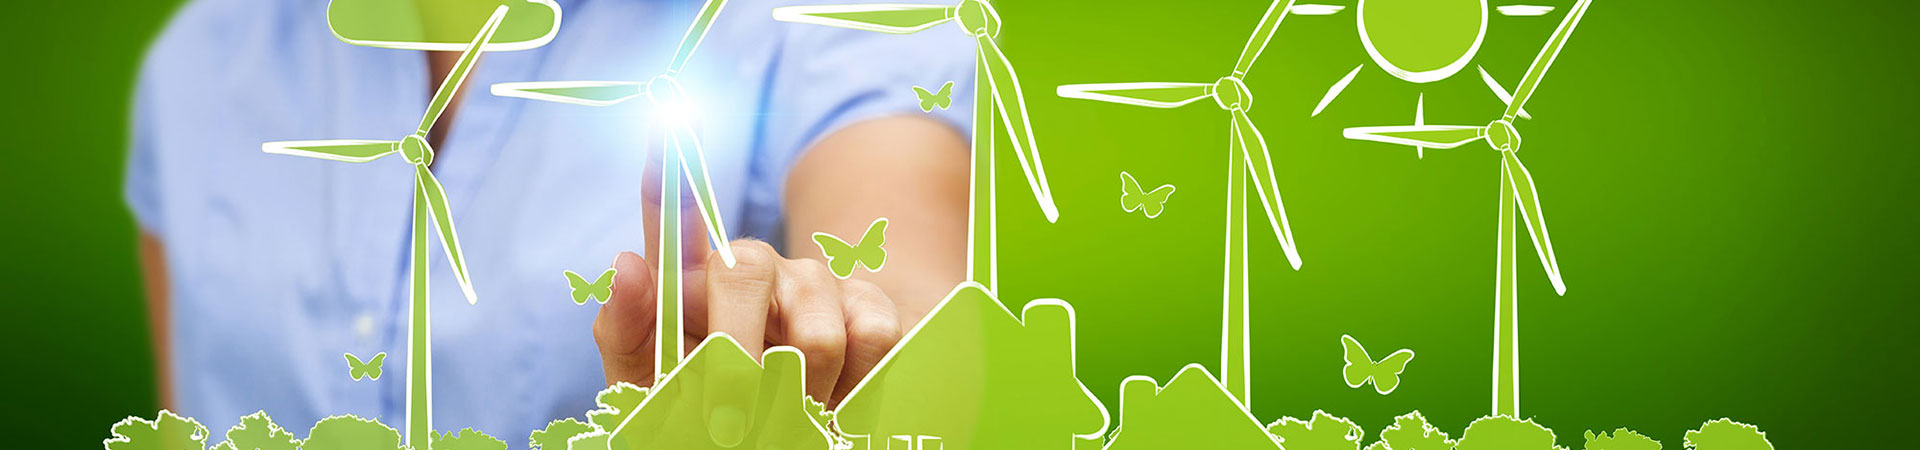 Banner showing business woman touching renewable energy sketch